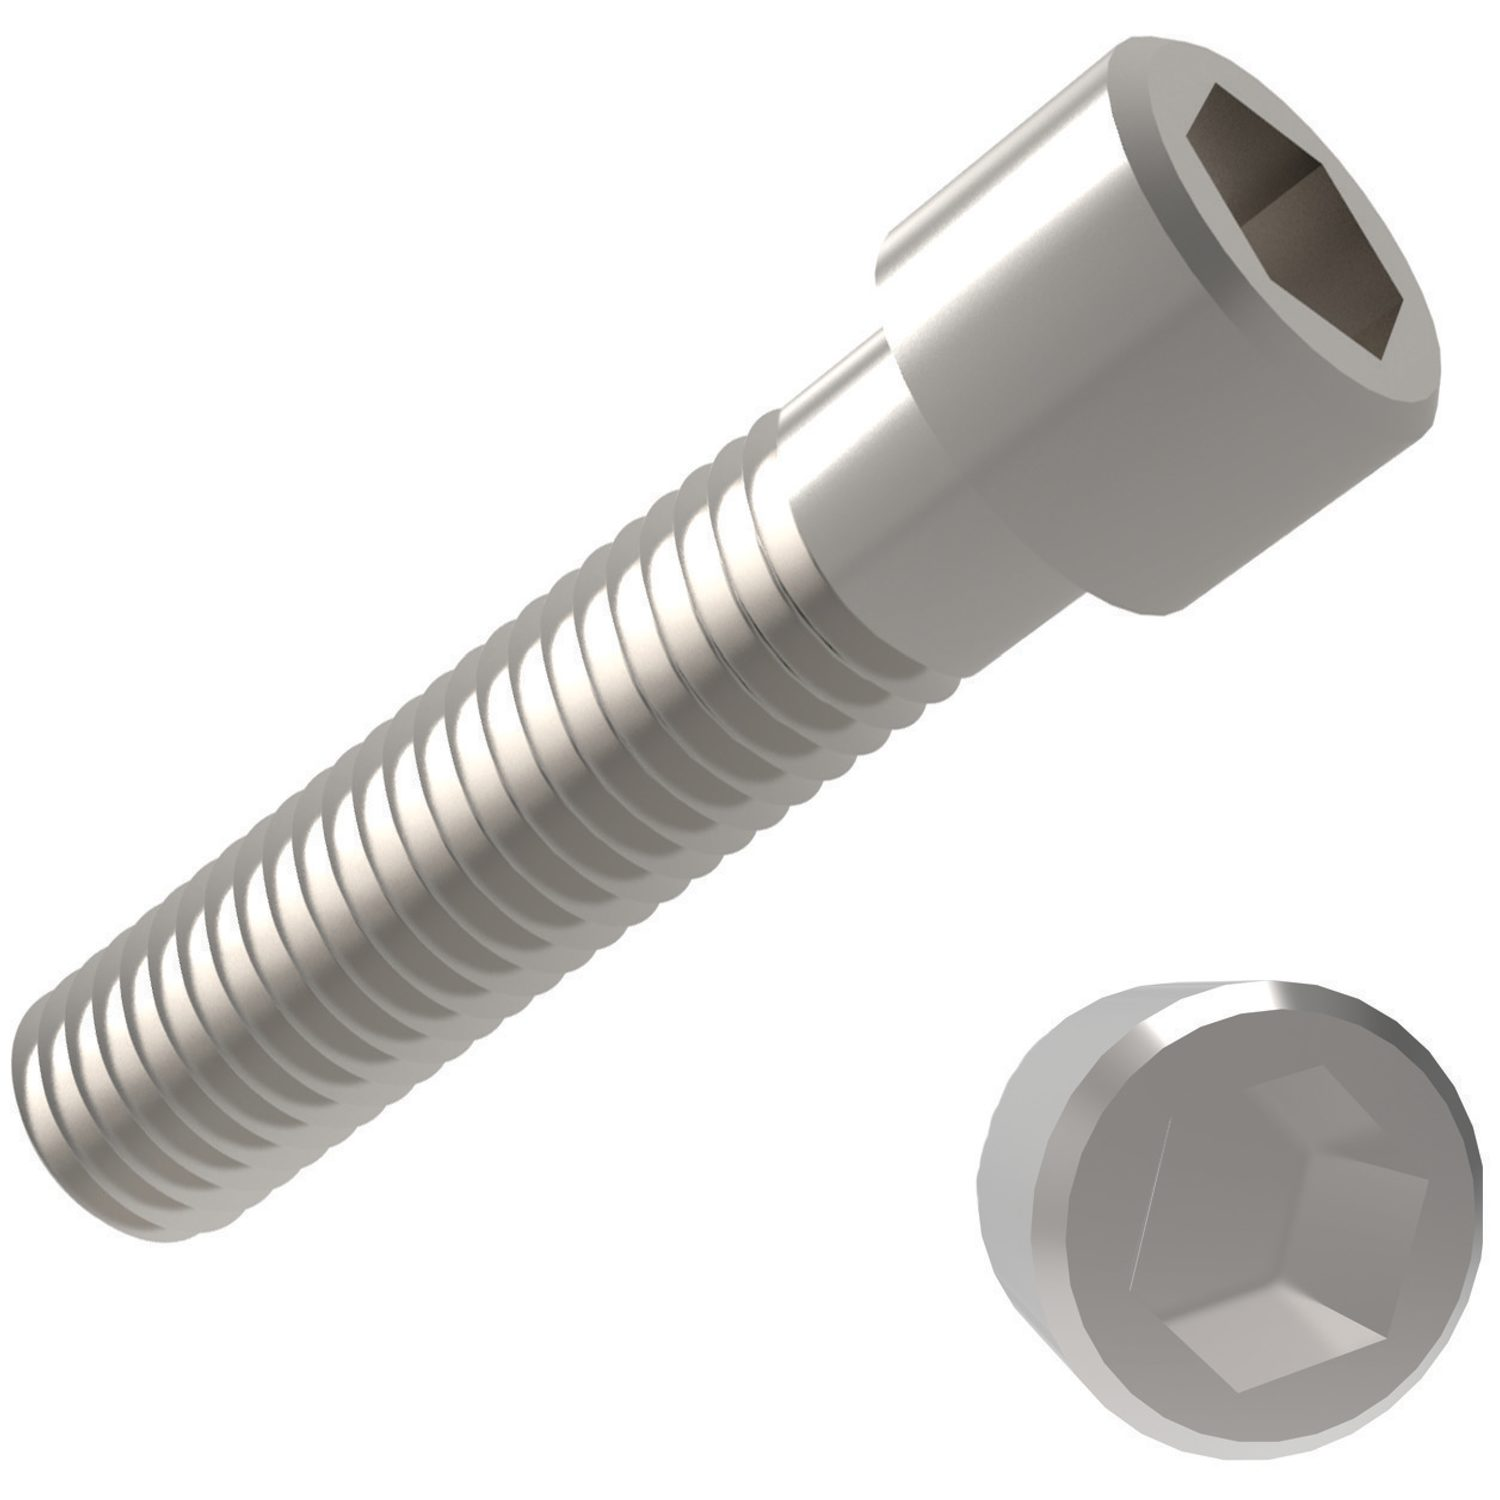 P0201.A2 - Socket Cap Screws